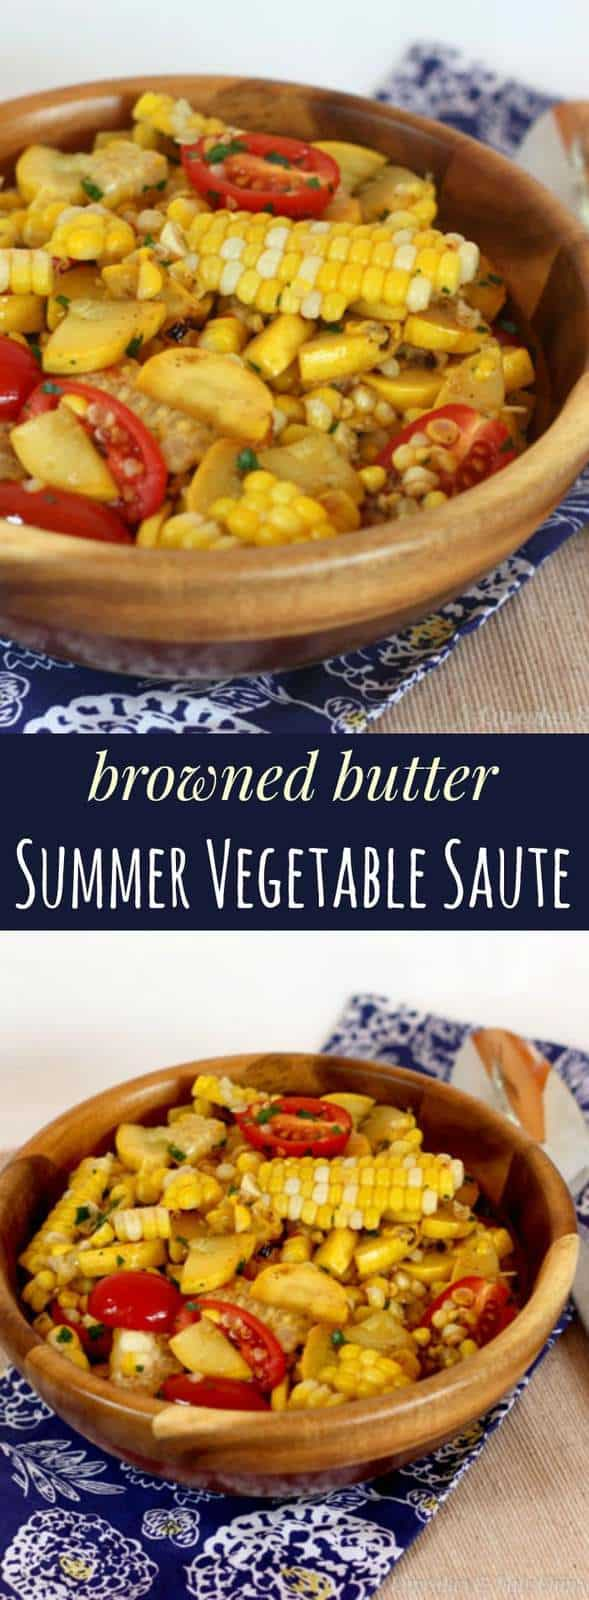 Browned Butter Summer Vegetable Saute - fresh veggies with just enough browned butter for a nutty, rich flavor. Gluten free. | cupcakesandkalechips.com